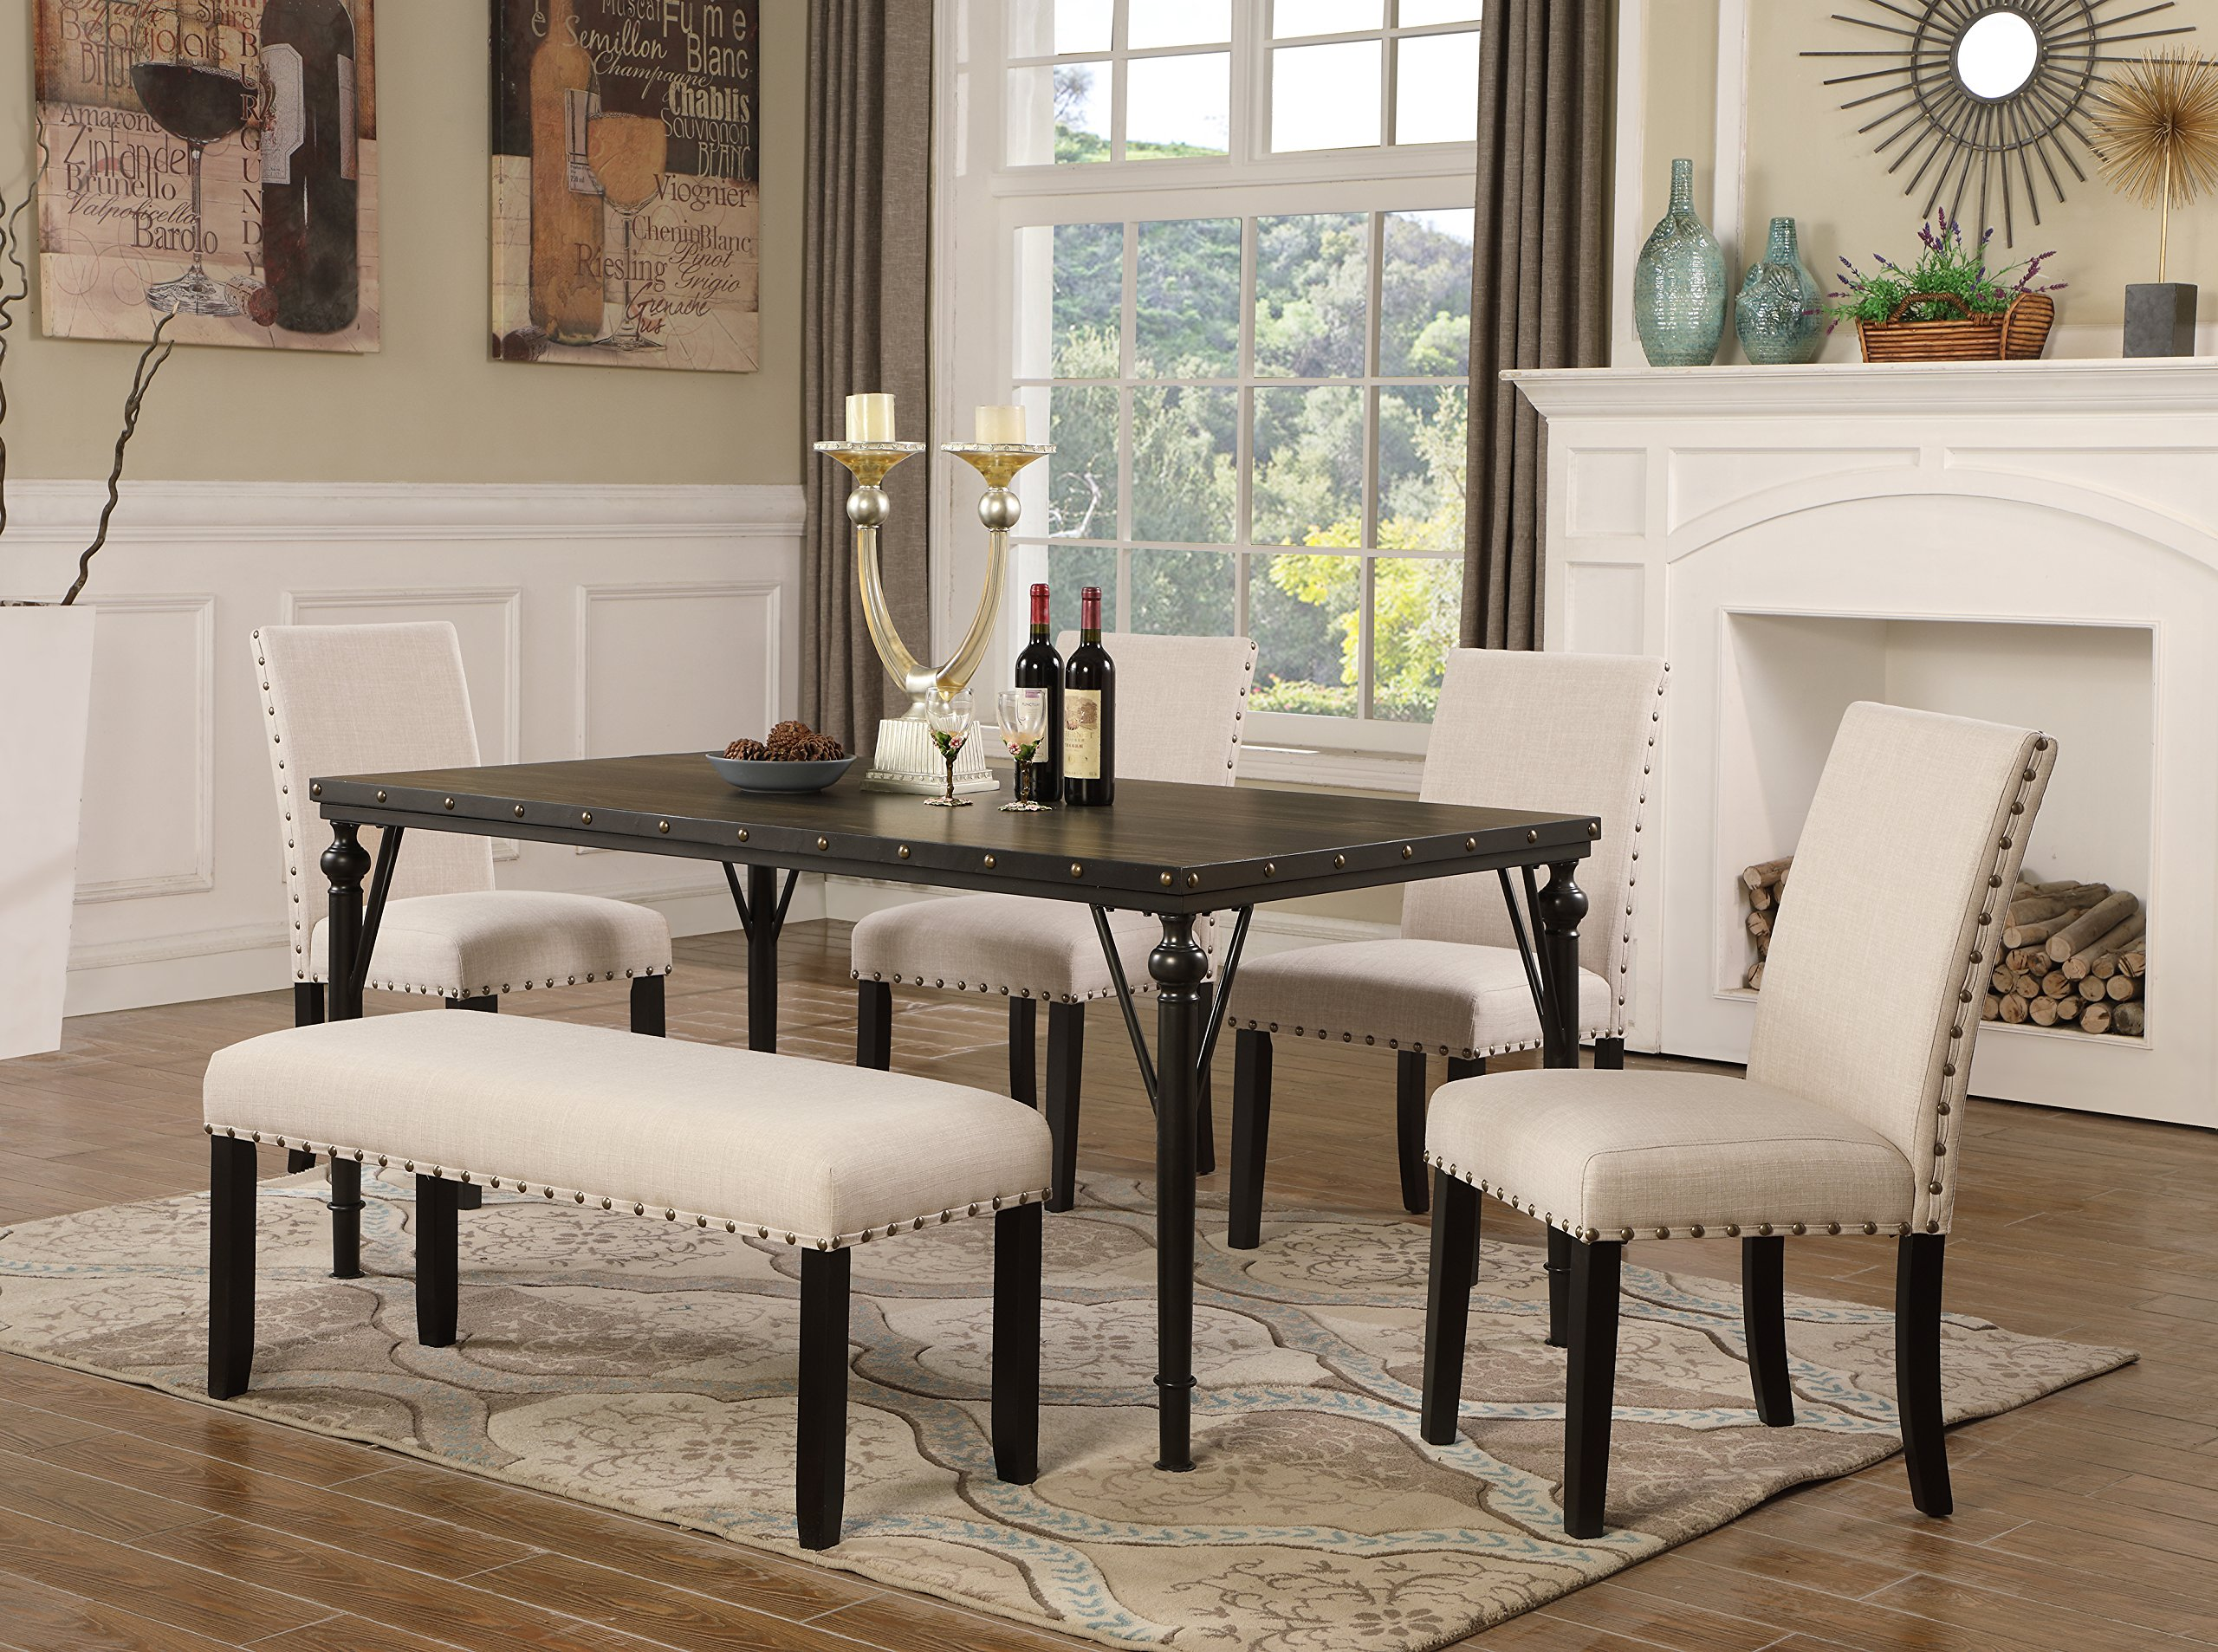 Roundhill Furniture T163-C162TA-C162TA-CB162TA Biony 6-Piece Wood Dining Set with Nailhead Chairs and Bench, Tan by Roundhill Furniture (Image #1)